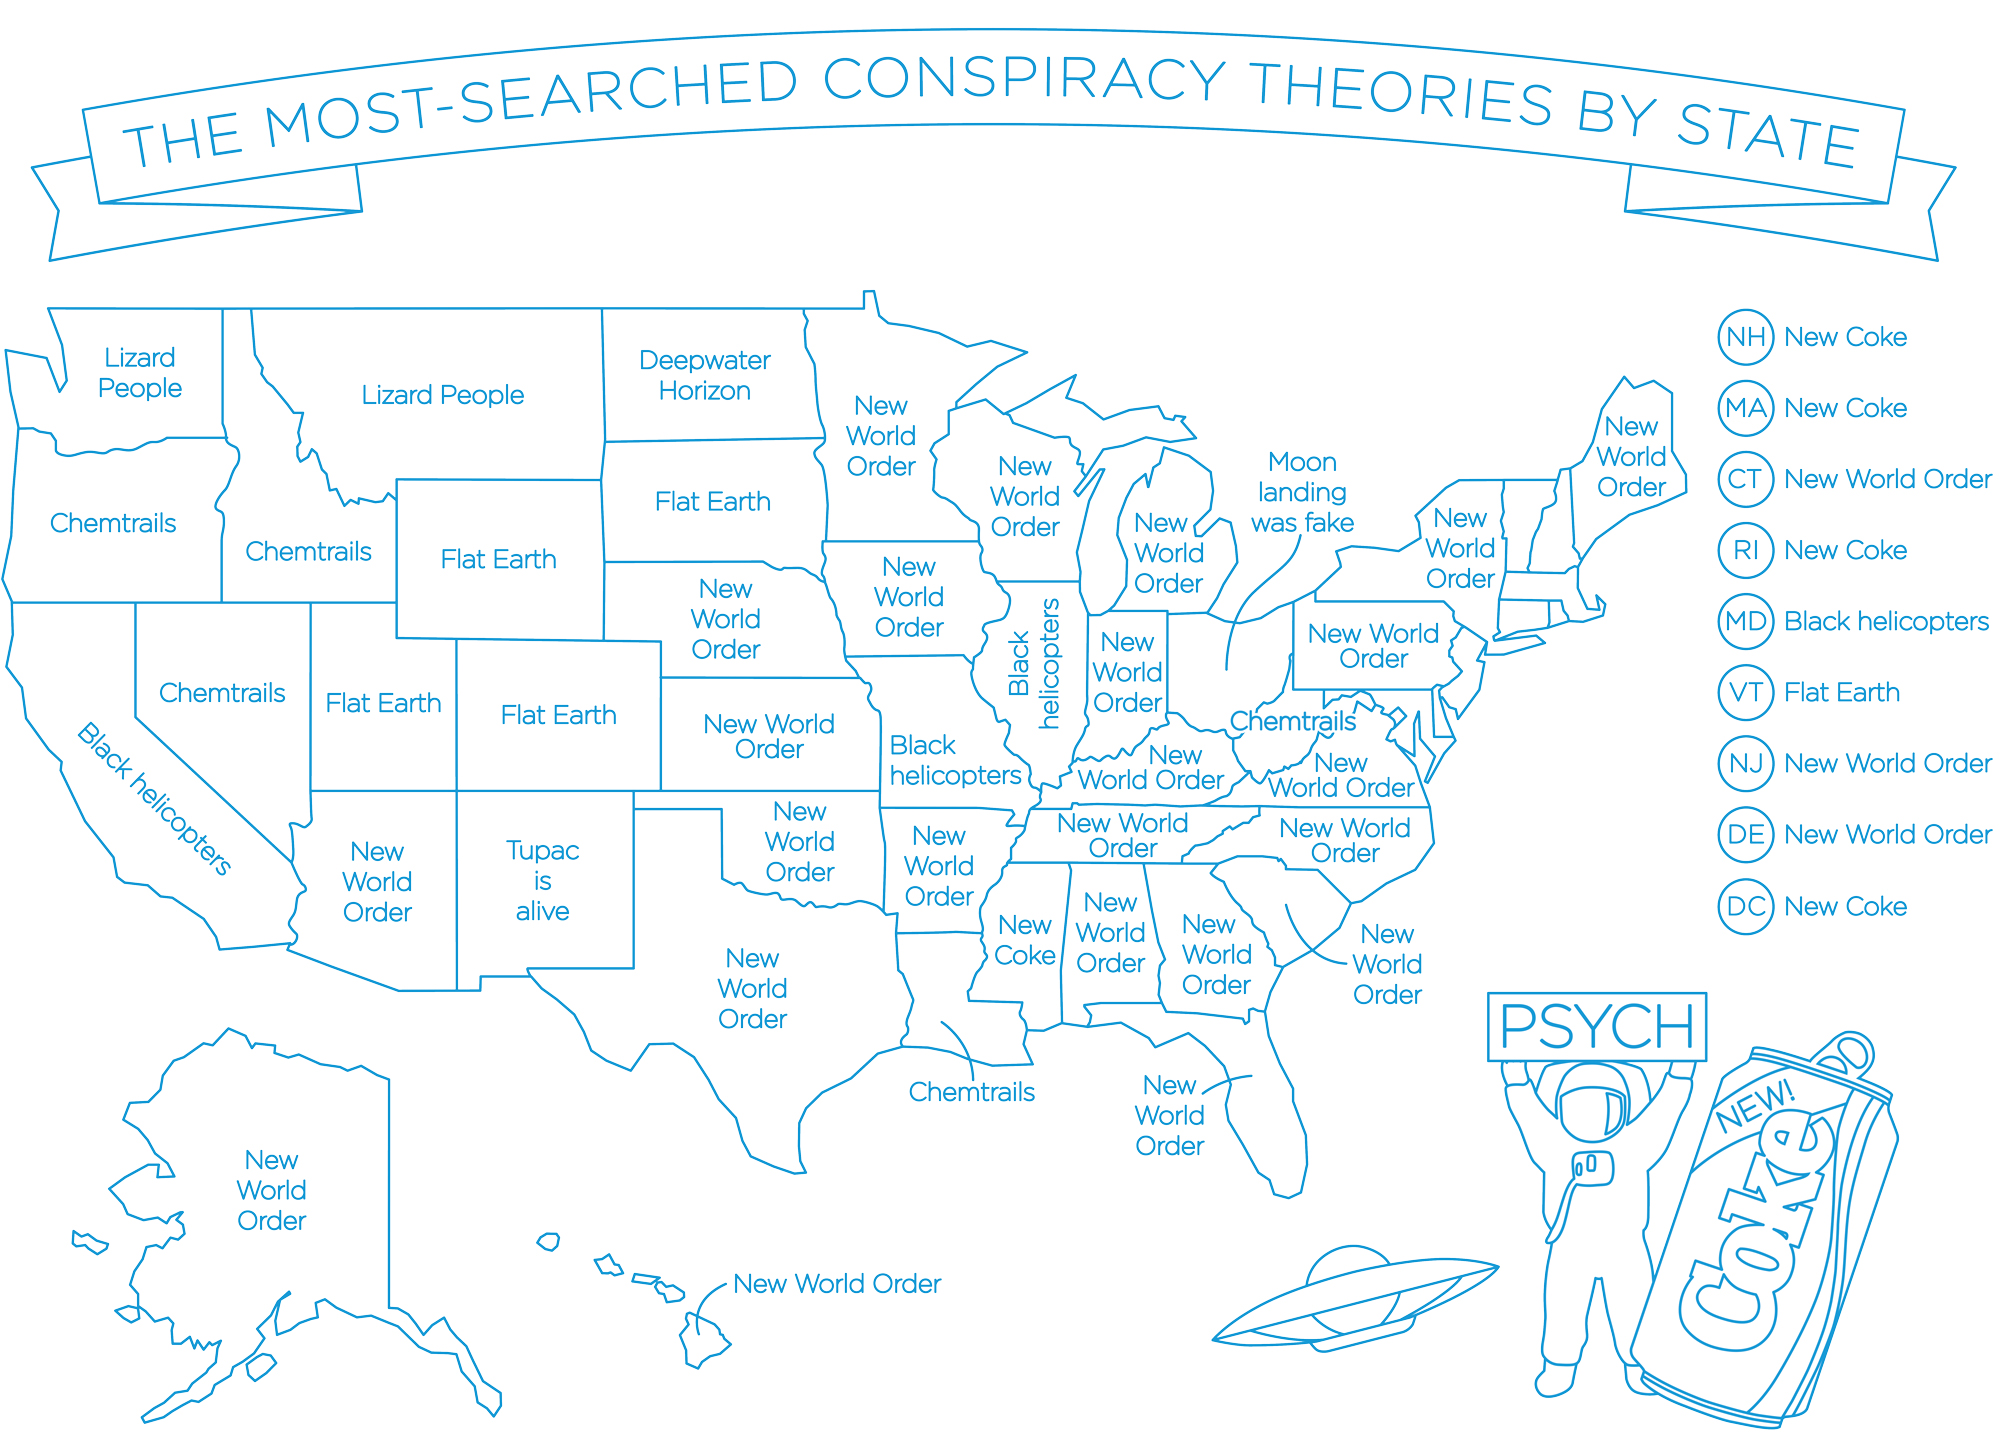 Each State's Most Searched Conspiracy Theories